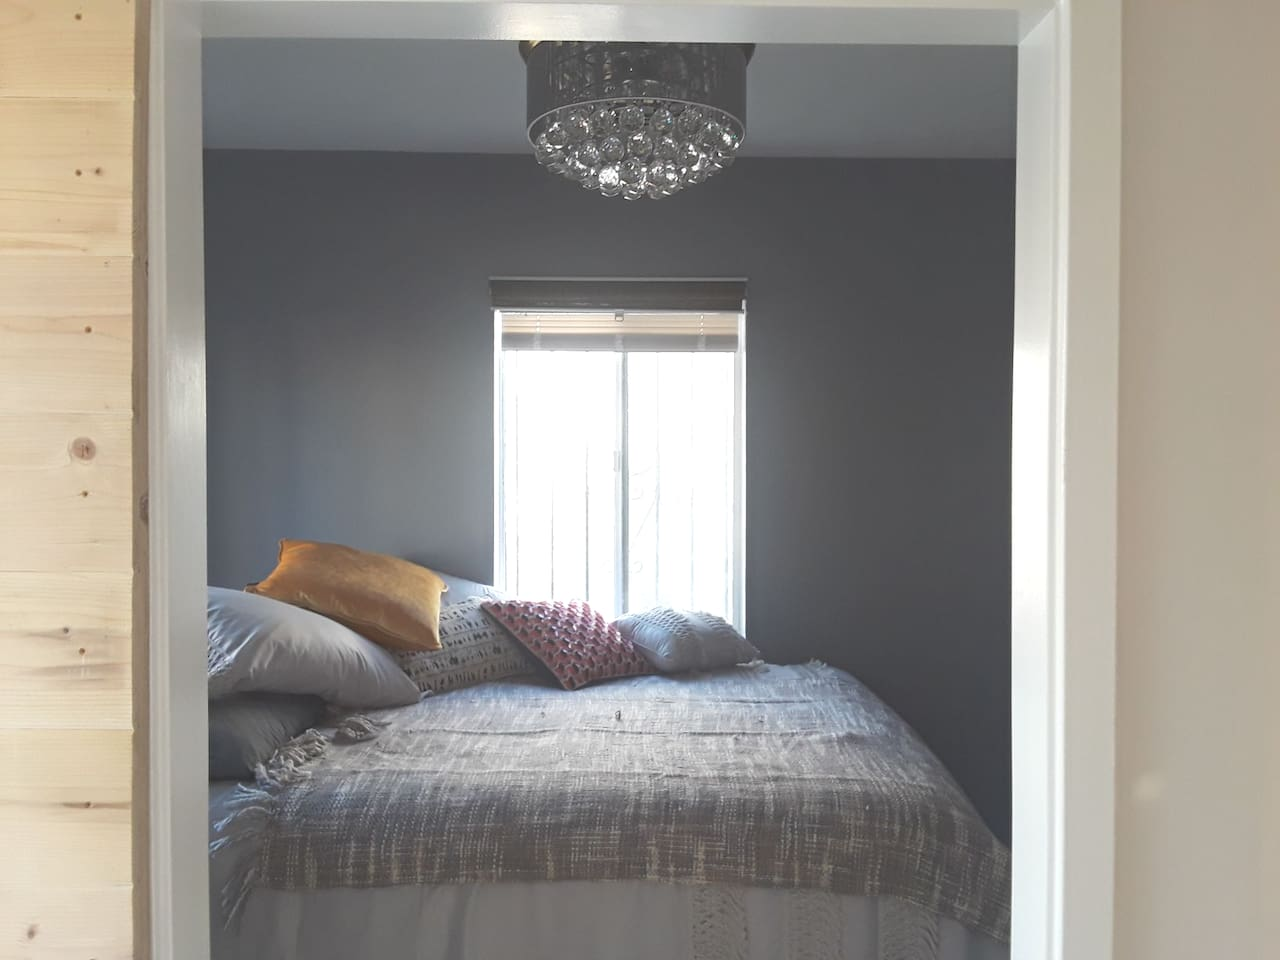 Bedroom with queen sized bed with dimmer-equipped chandelier ceiling fan